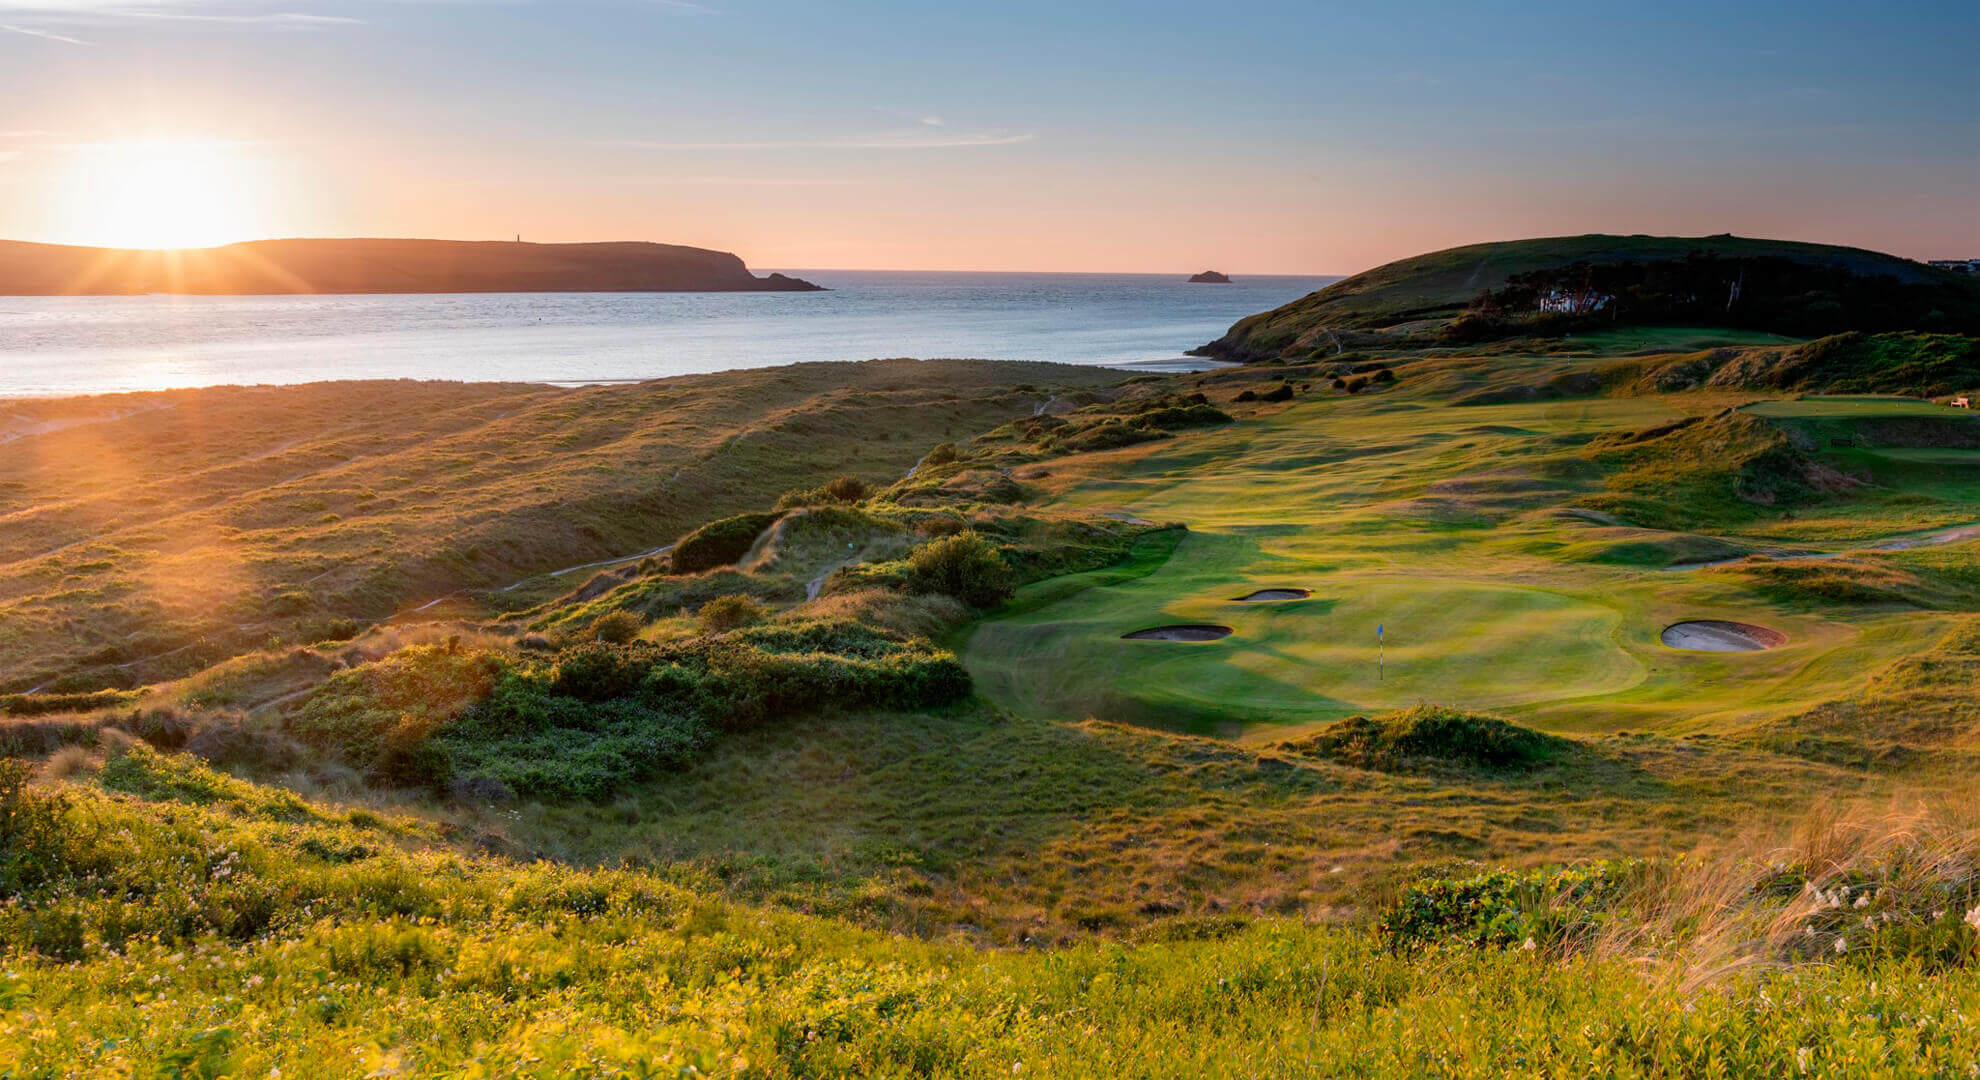 St EnGolf Course, South West England